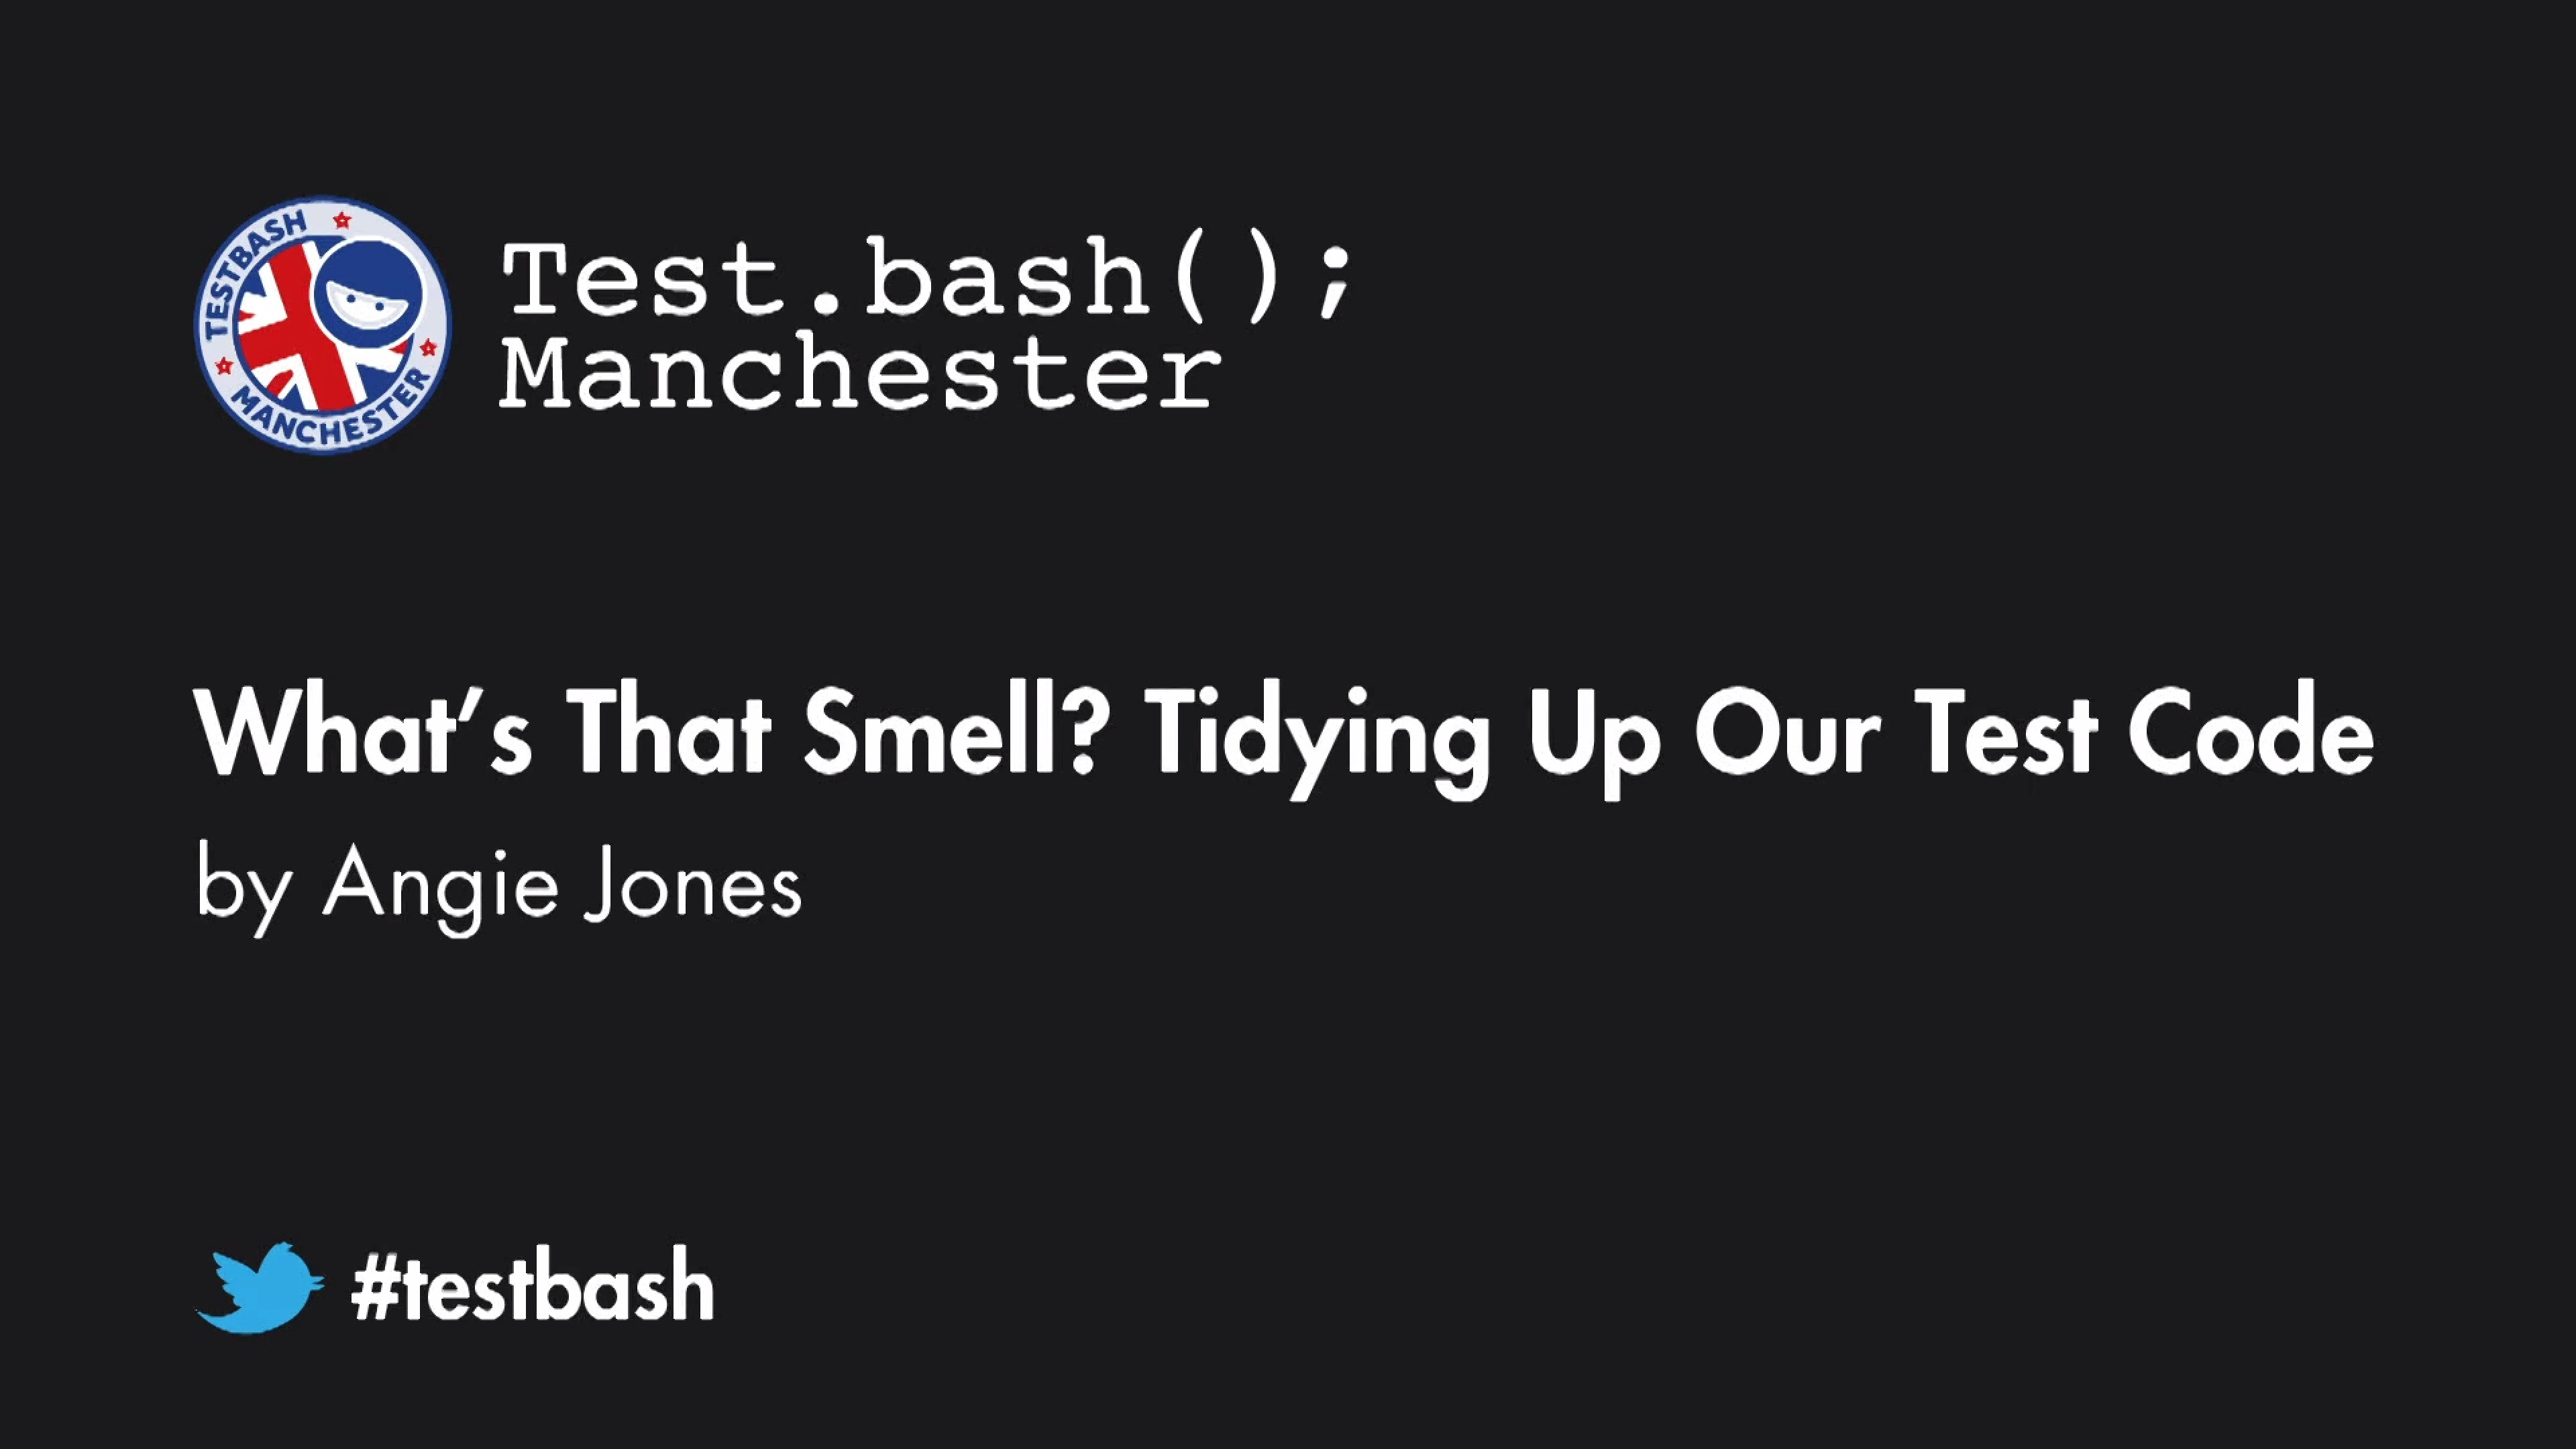 What's that Smell? Tidying Up Our Test Code - Angie Jones